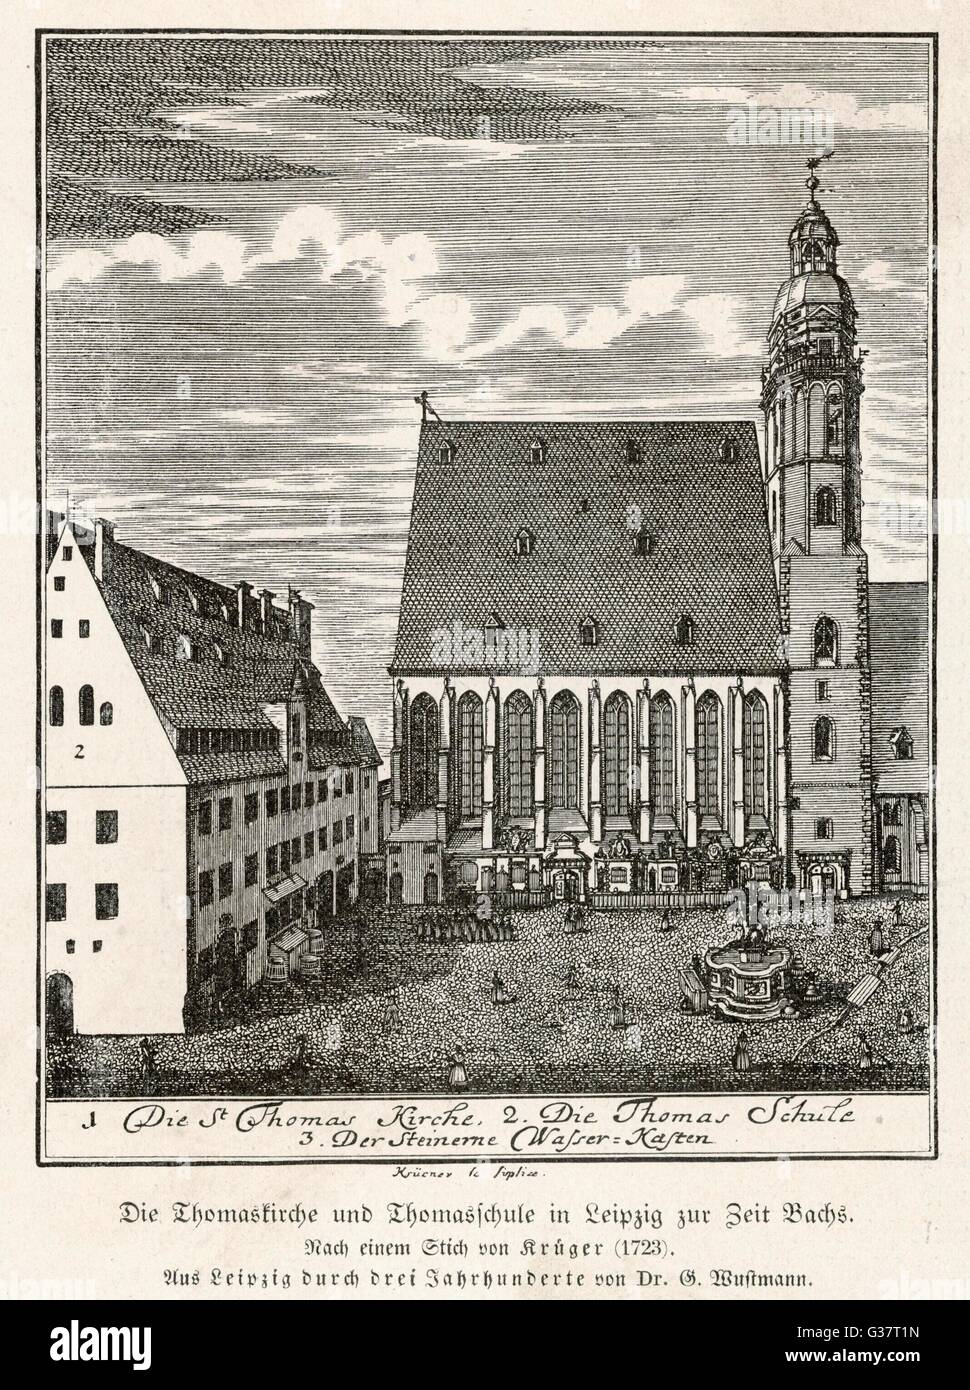 St. Thomas Church, Leipzig, at the time of Bach. Date: 1723